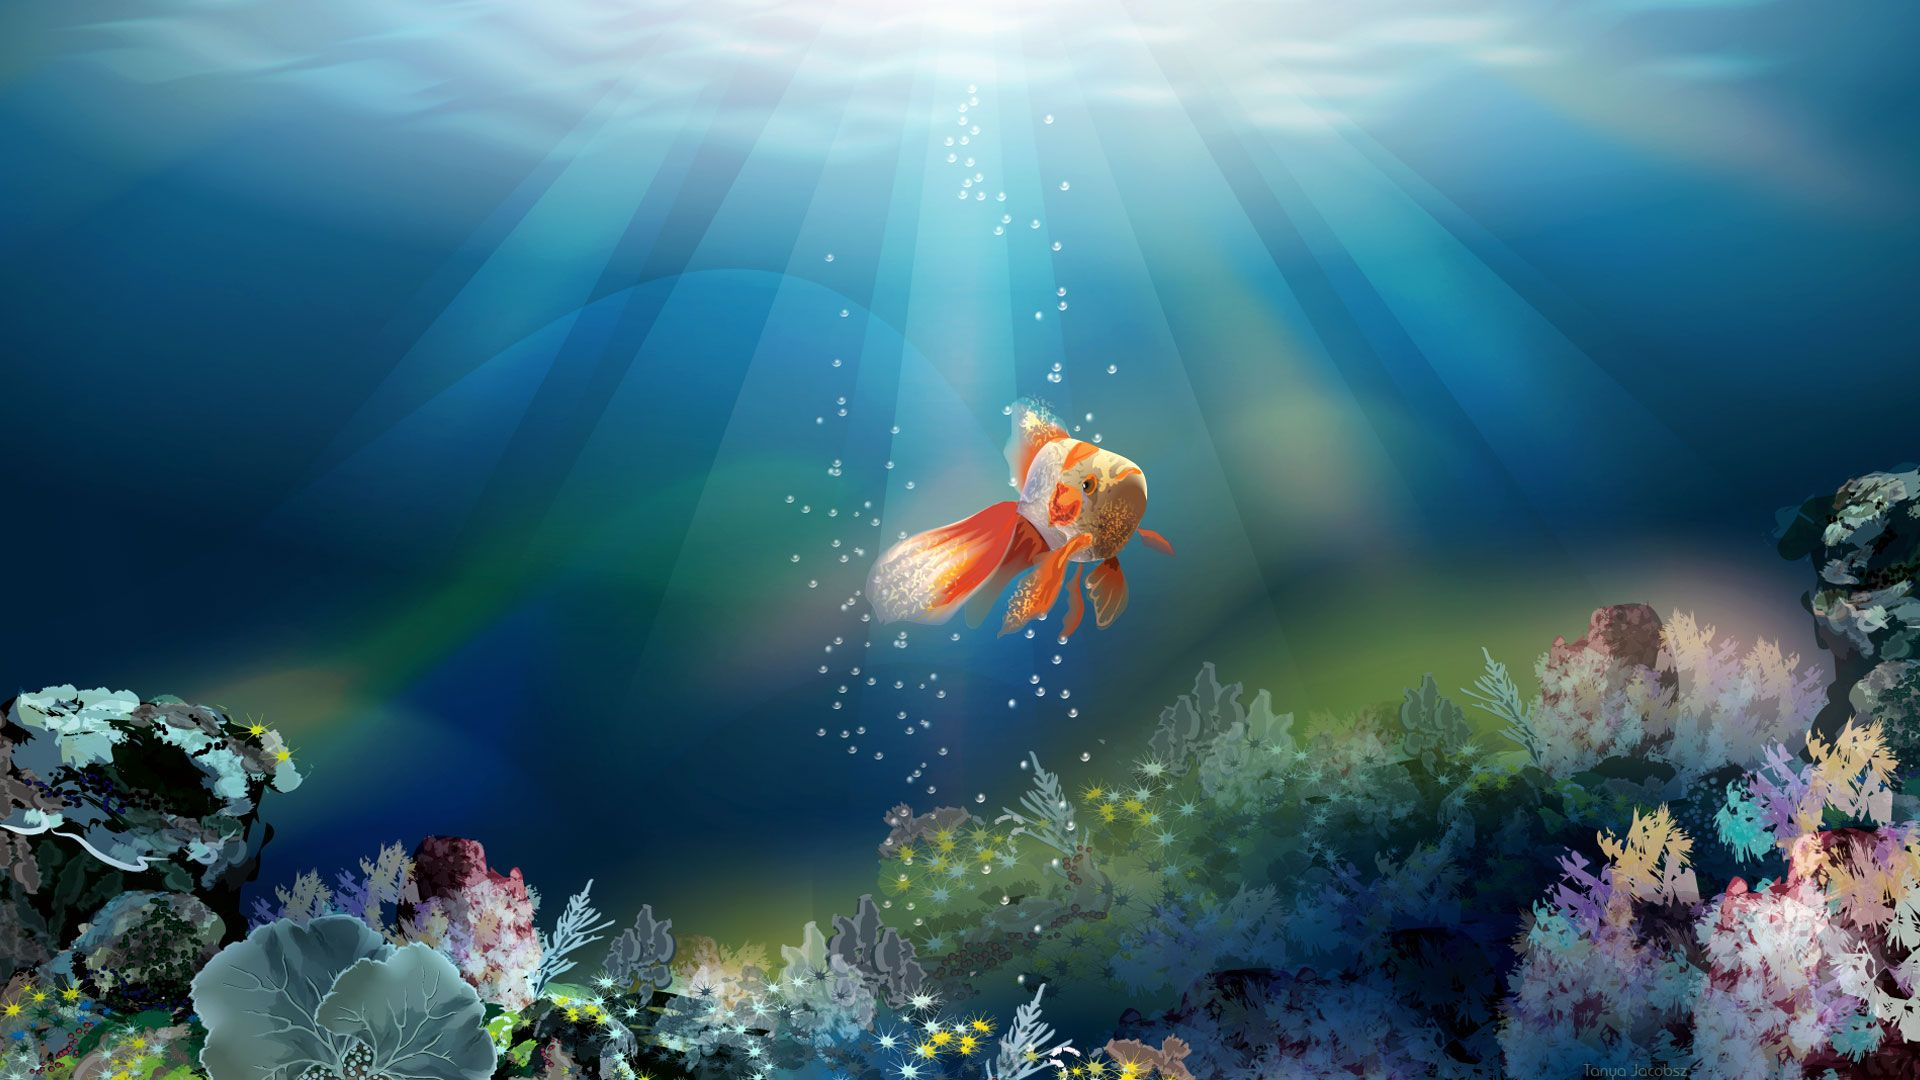 Pin By Elizabeth Allen On ~Under The Sea~